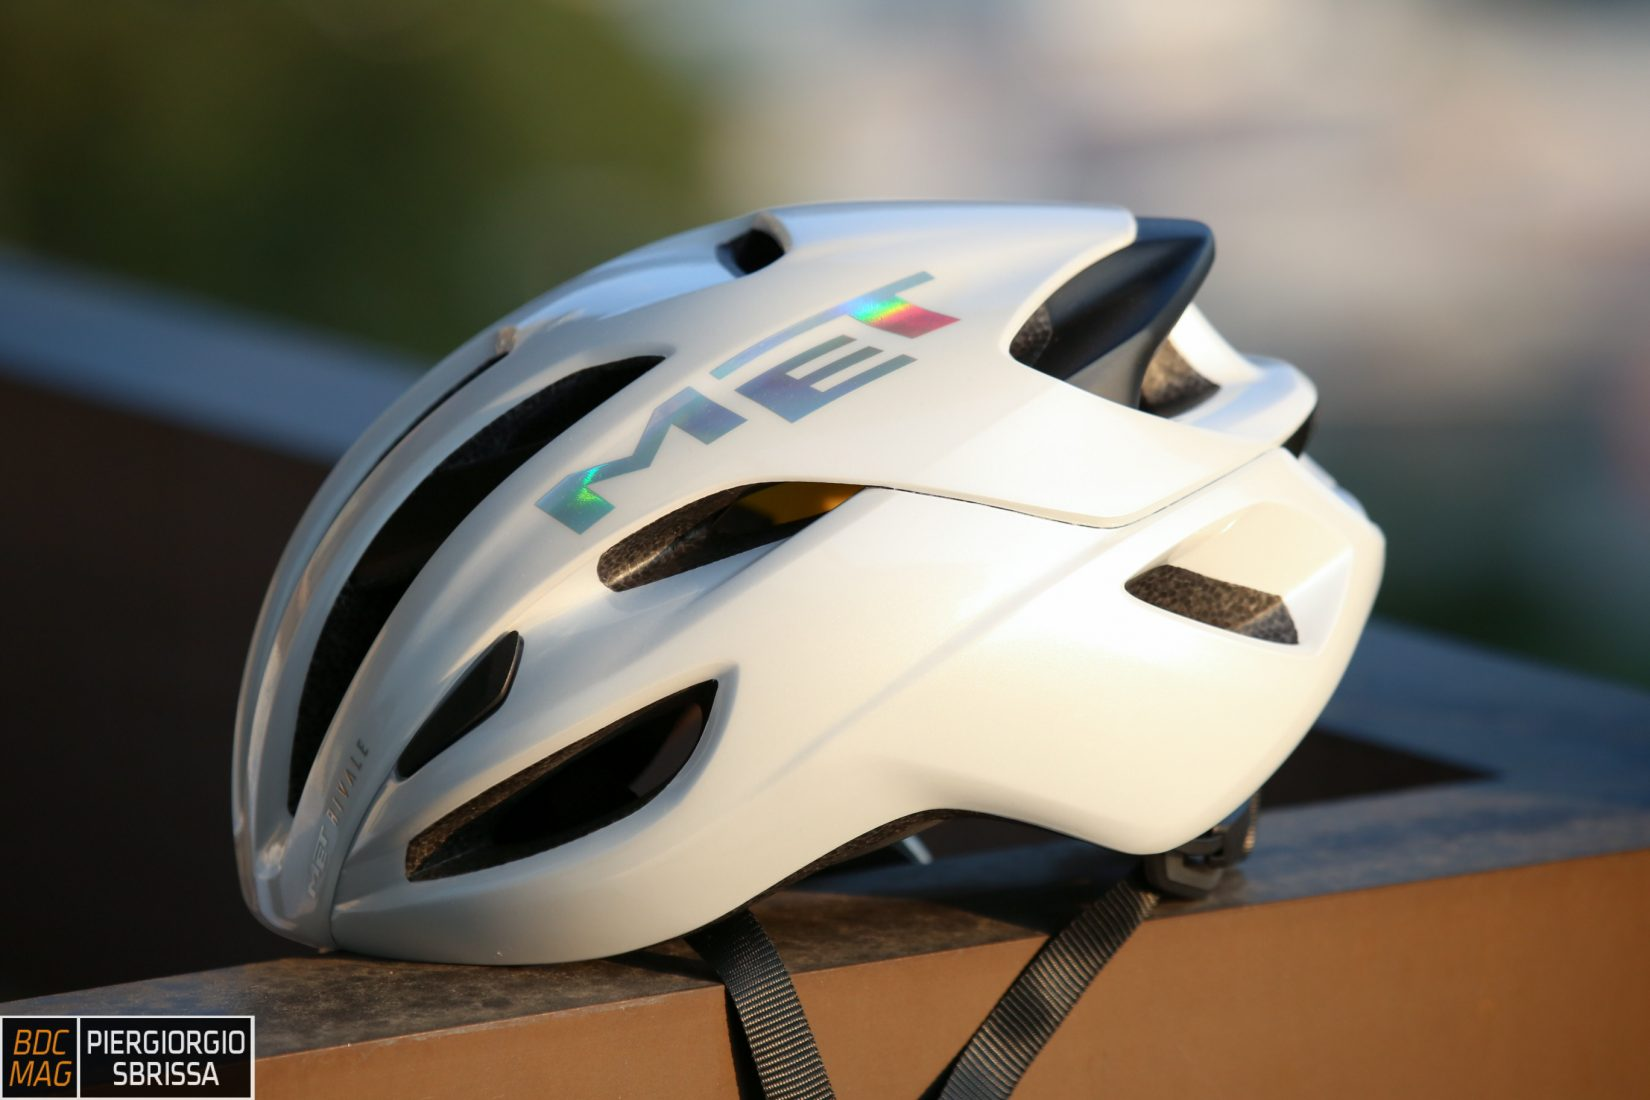 [Test] Nuovo casco MET Rivale MIPS